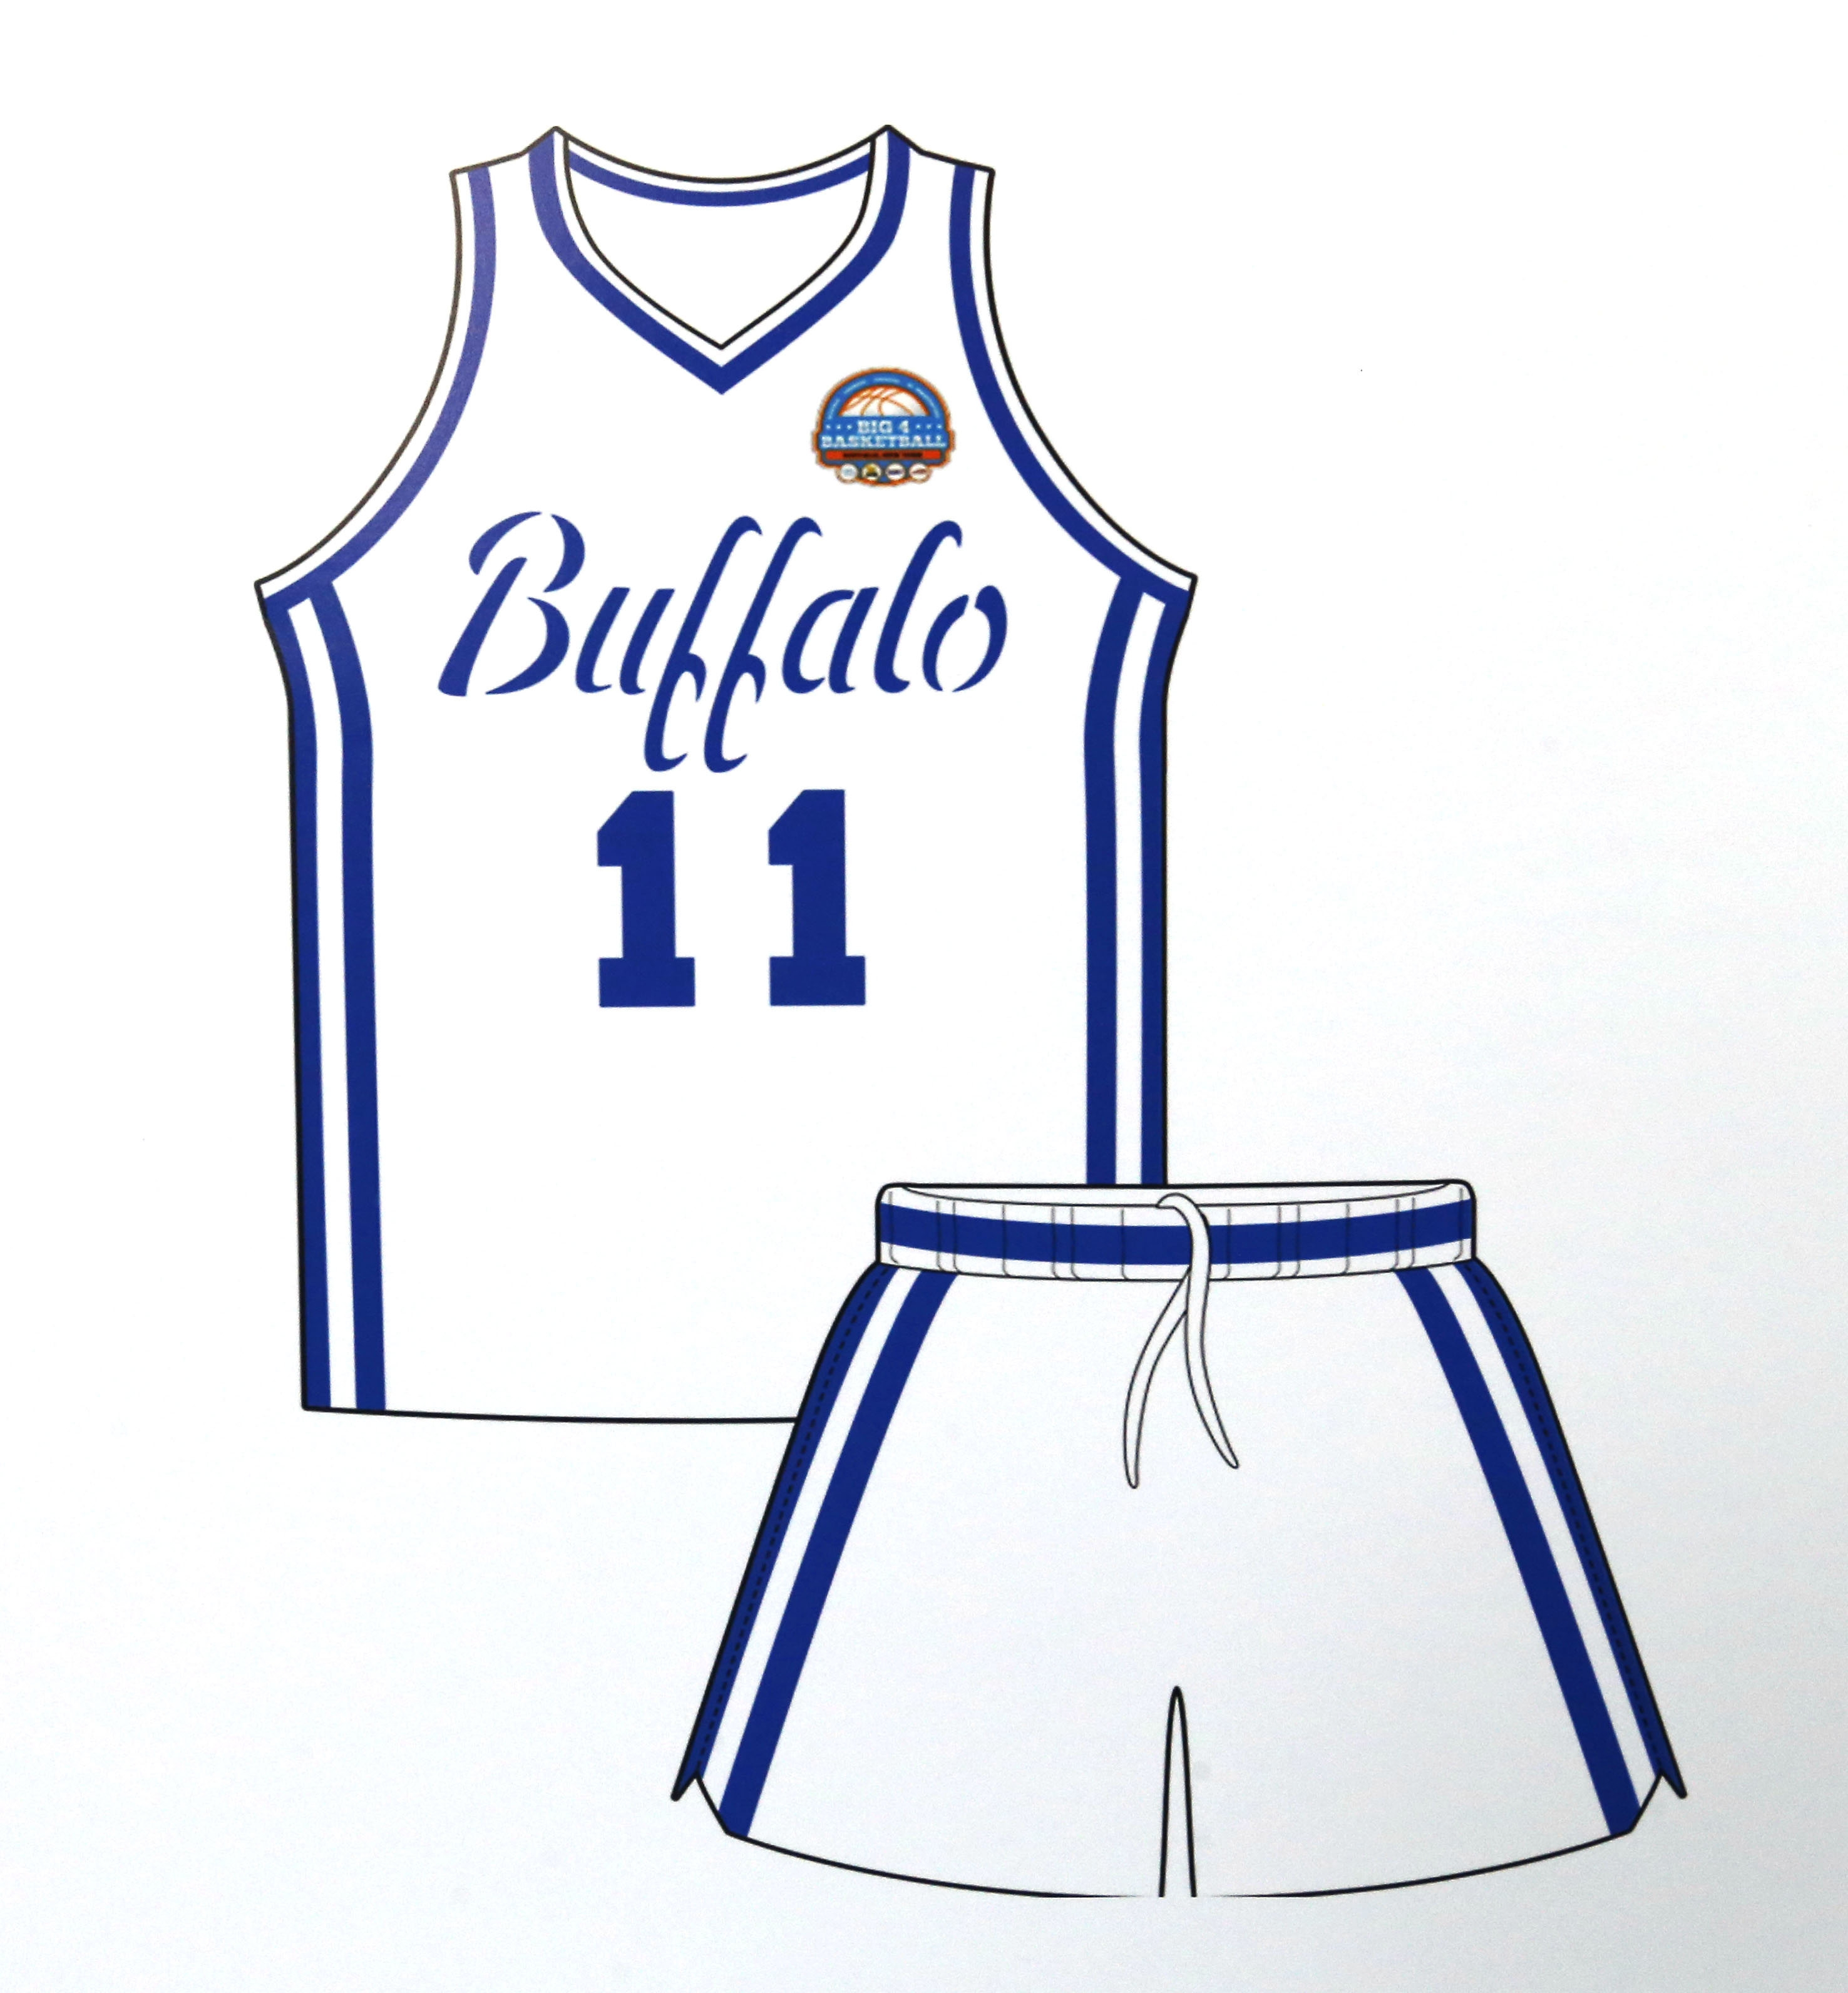 Throwback uniform that will worn by UB for the Big 4 Basketball Classic.